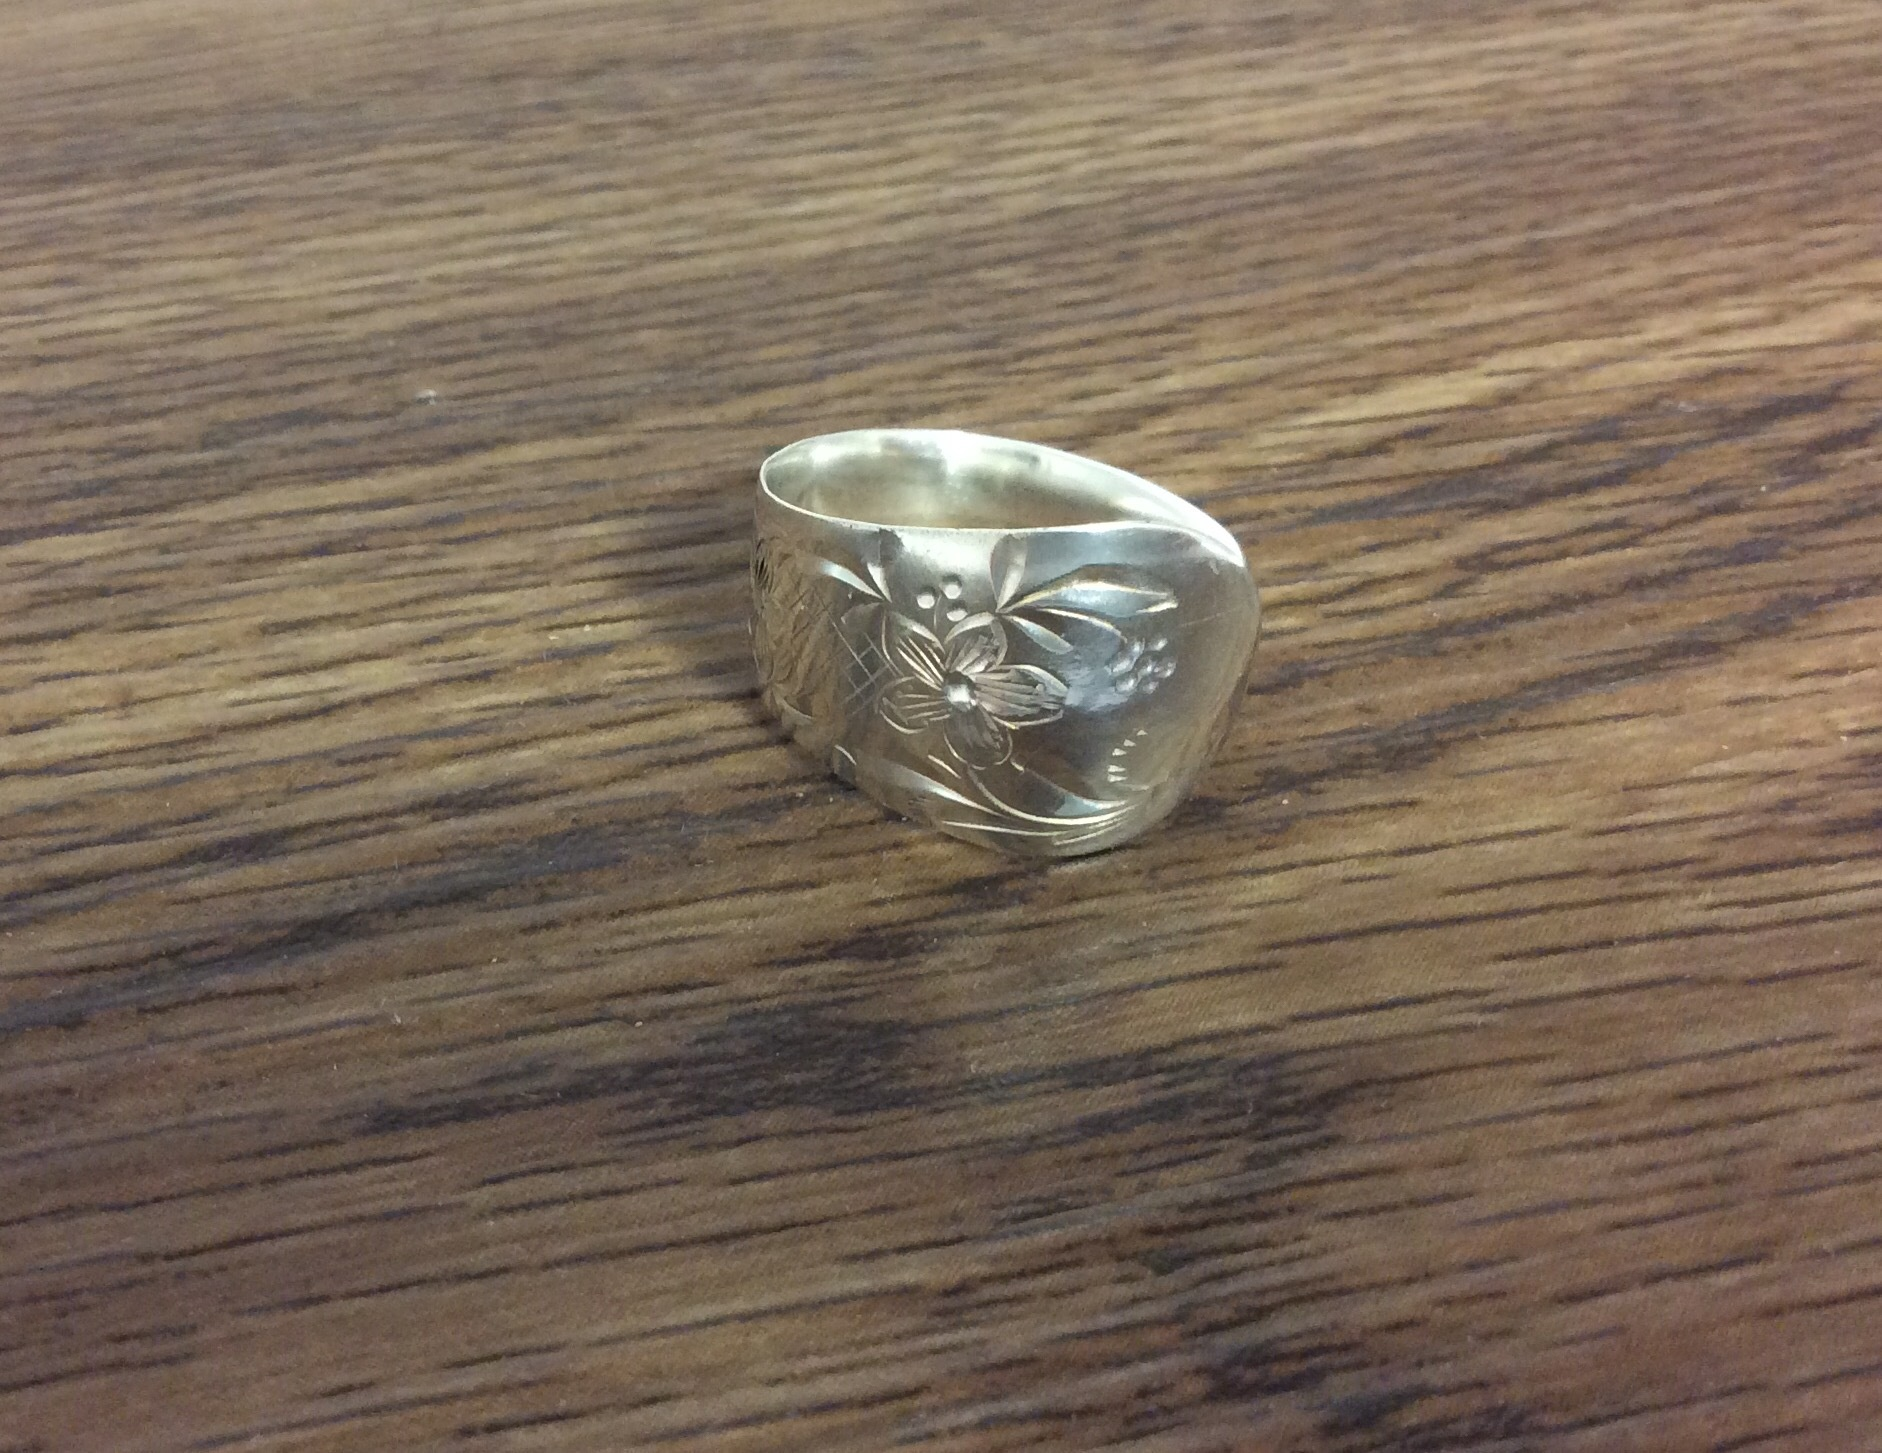 Antique Sterling Silver Spoon Ring (C 1900) - Size P